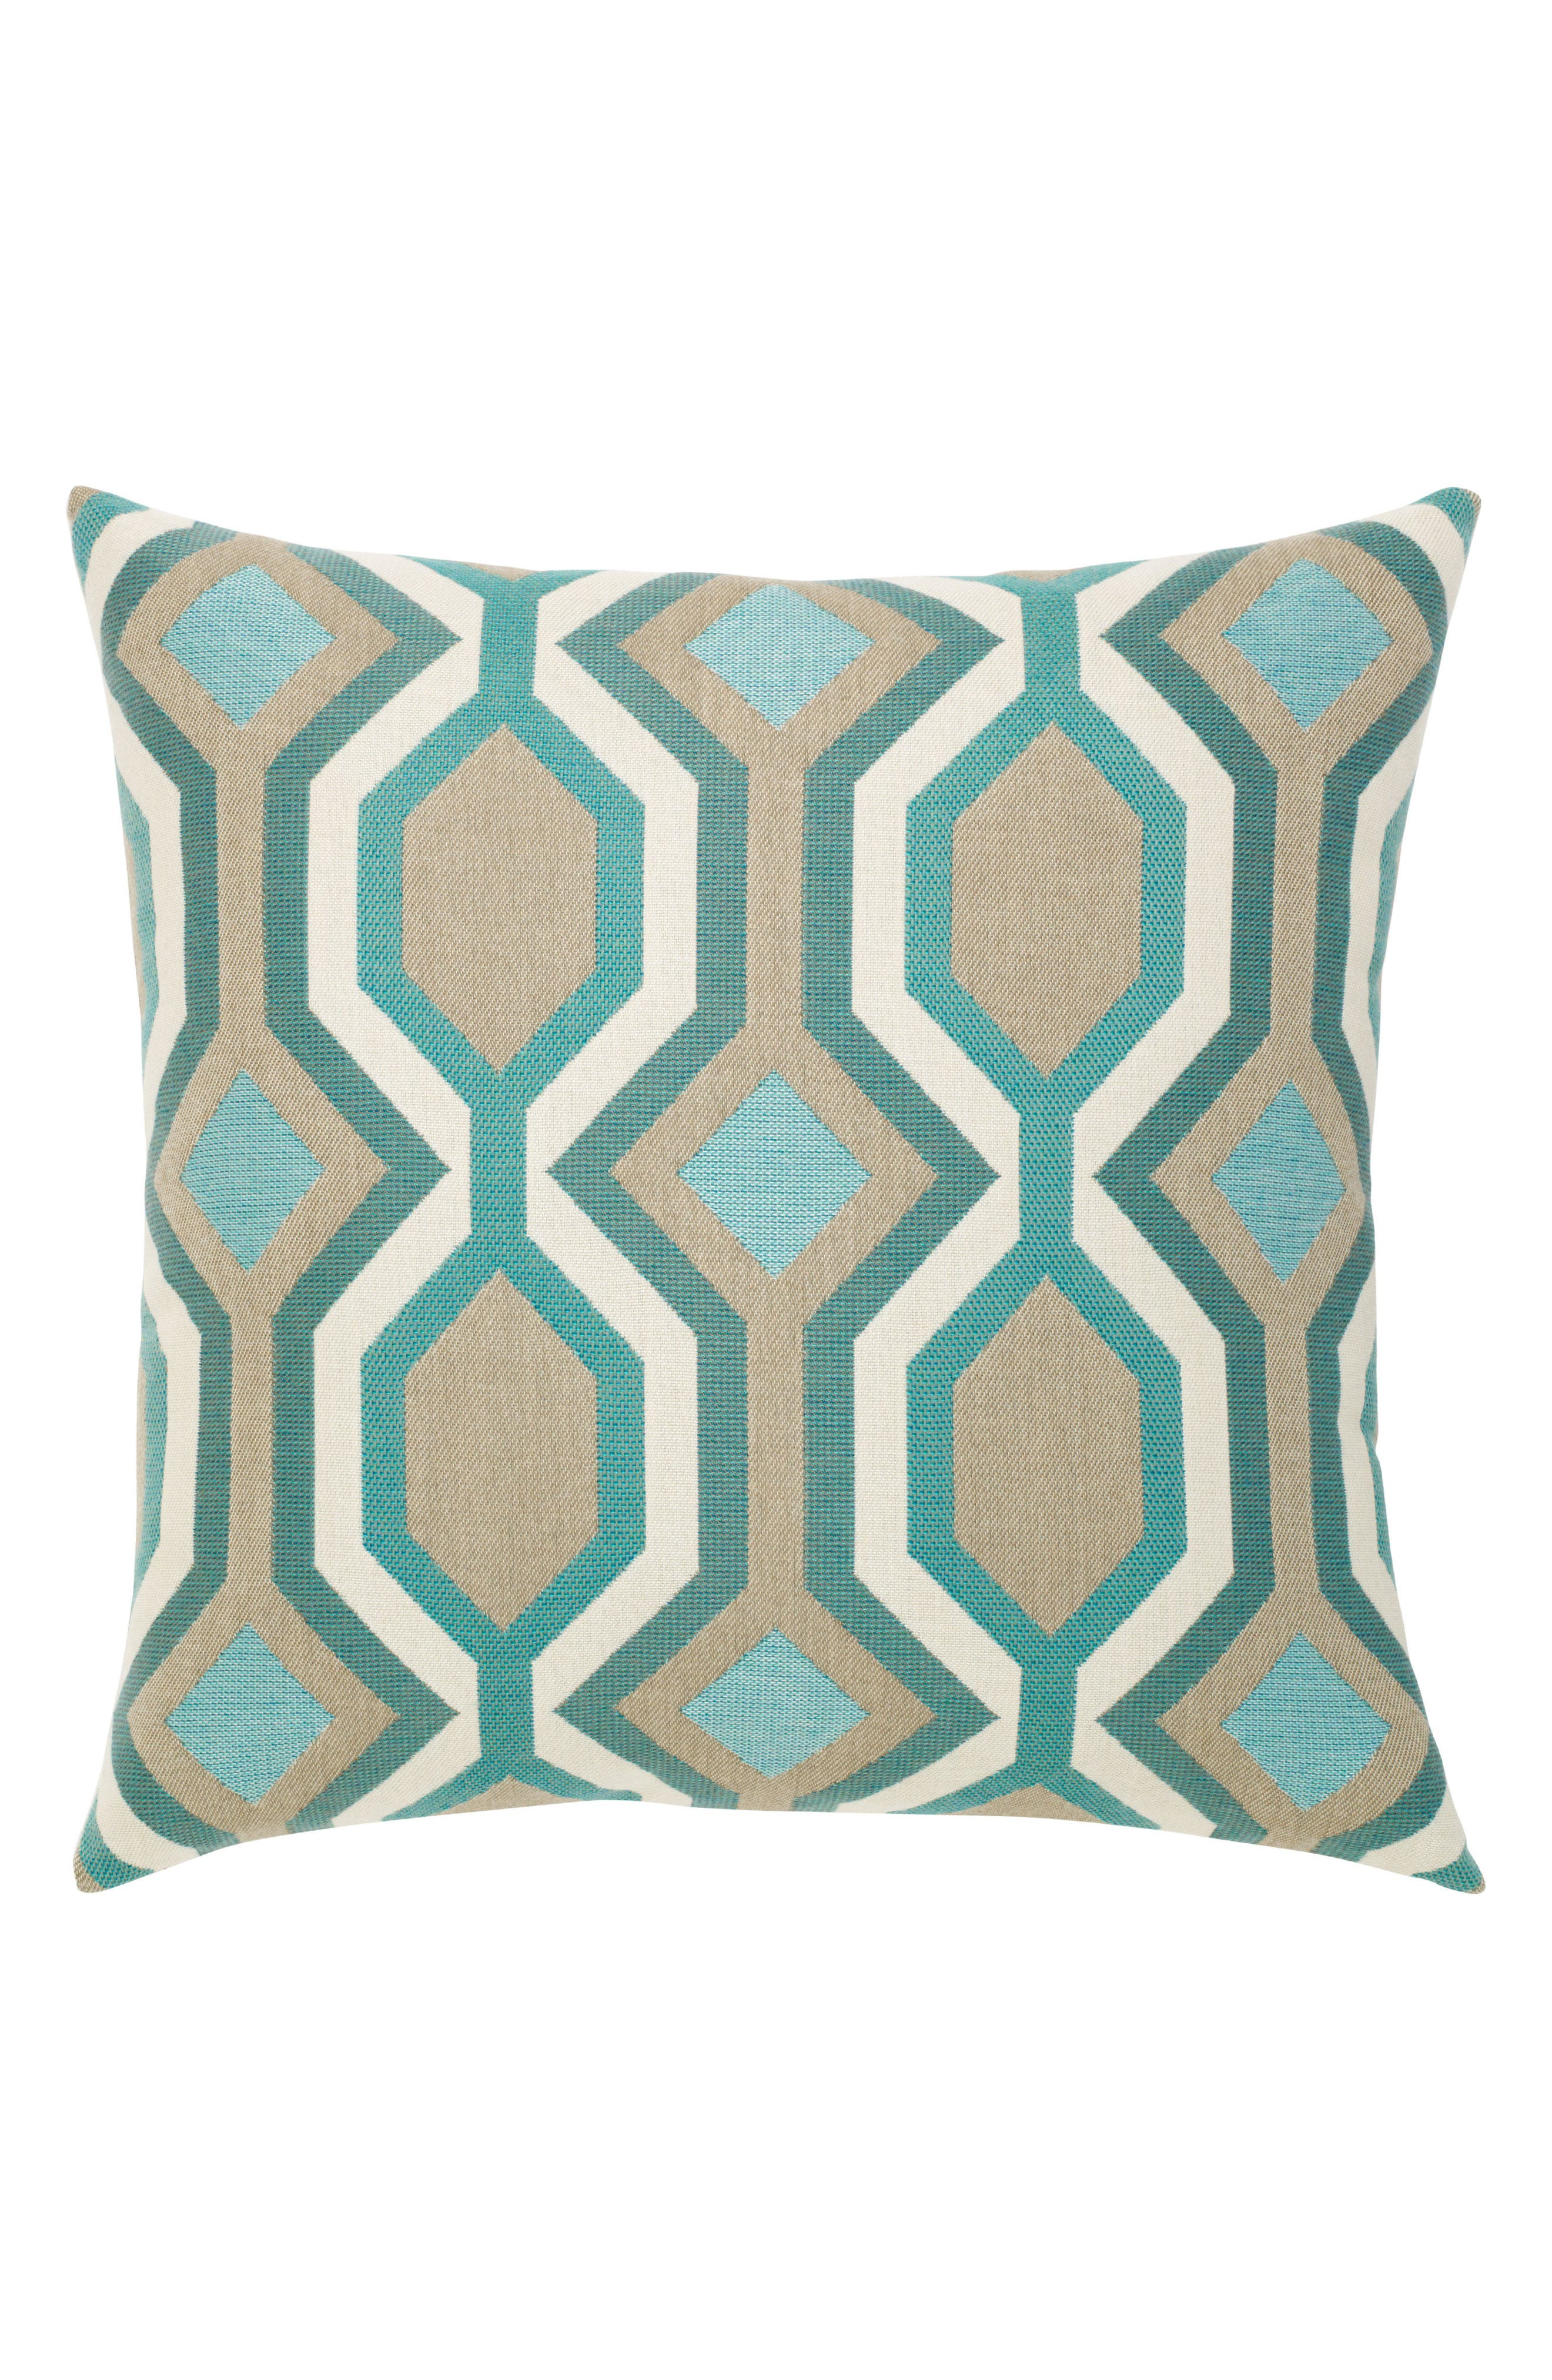 Turquoise Geo Indoor/Outdoor Accent Pillow,                             Main thumbnail 1, color,                             400